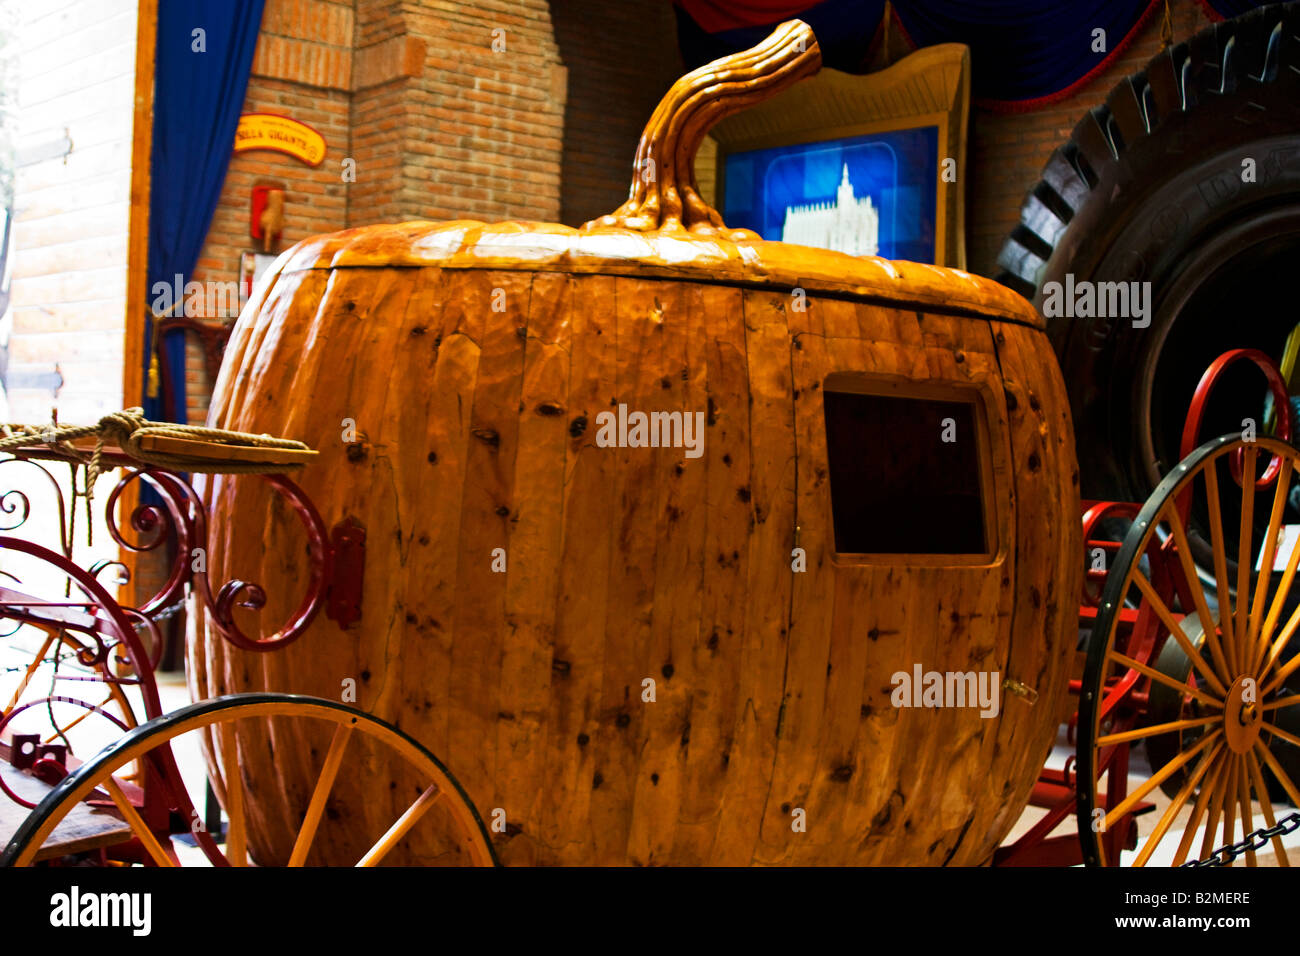 Mexico, Federal District, DF, Ripley´s Museum Coach of Pumpkin of the infantile history Cinderella - Stock Image